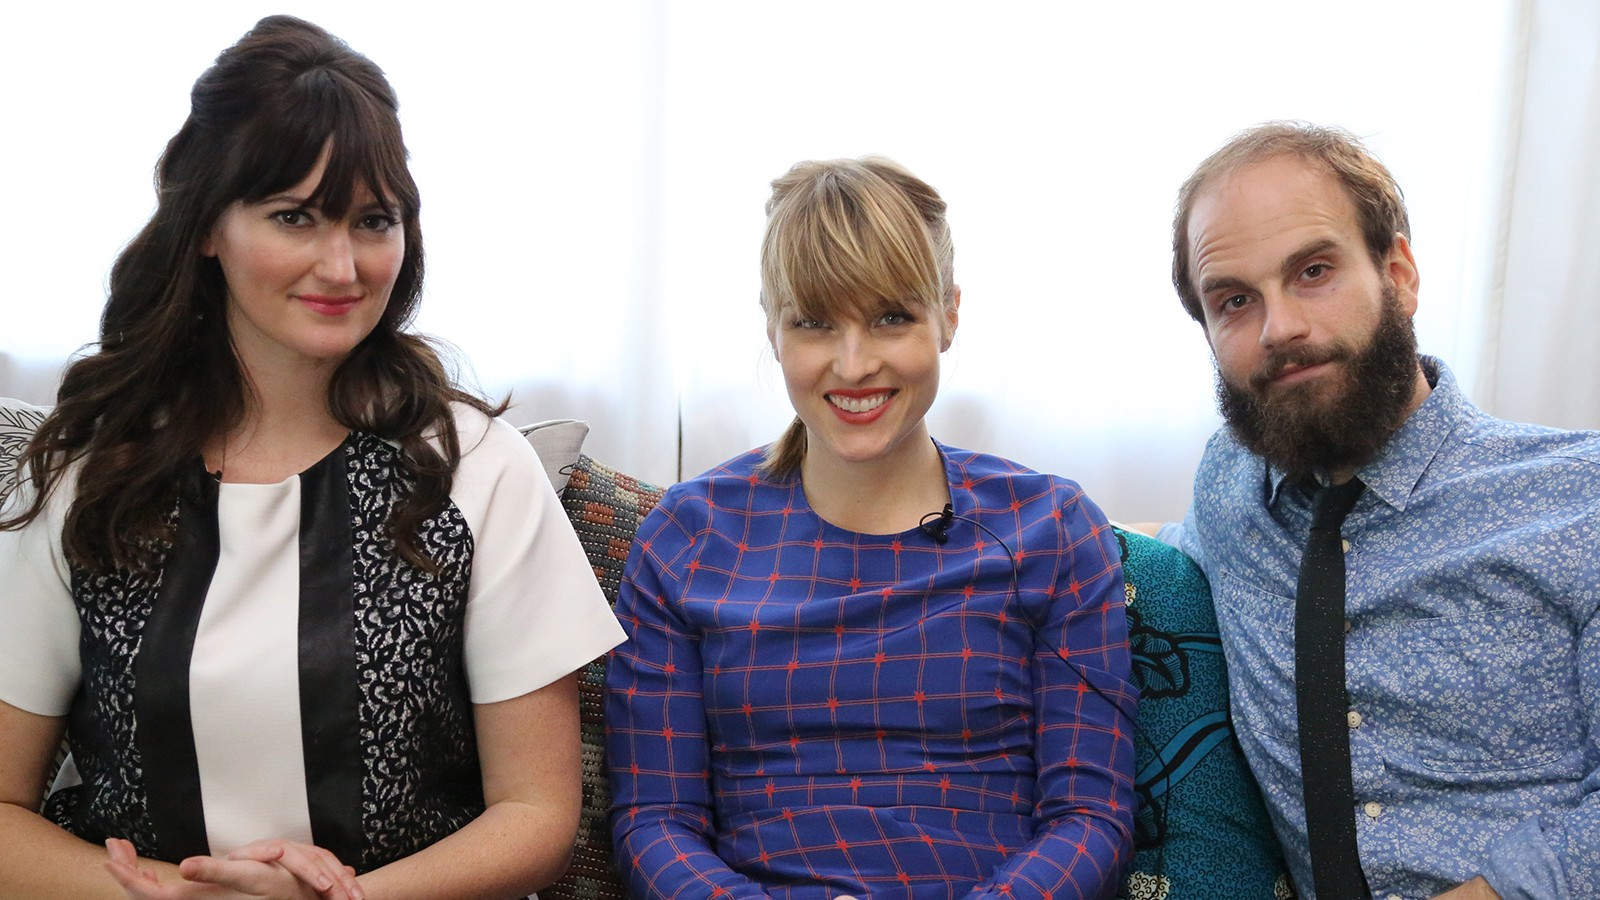 The Dinner Bell: A Brunch for the Cast and Crew of 'High Maintenance'